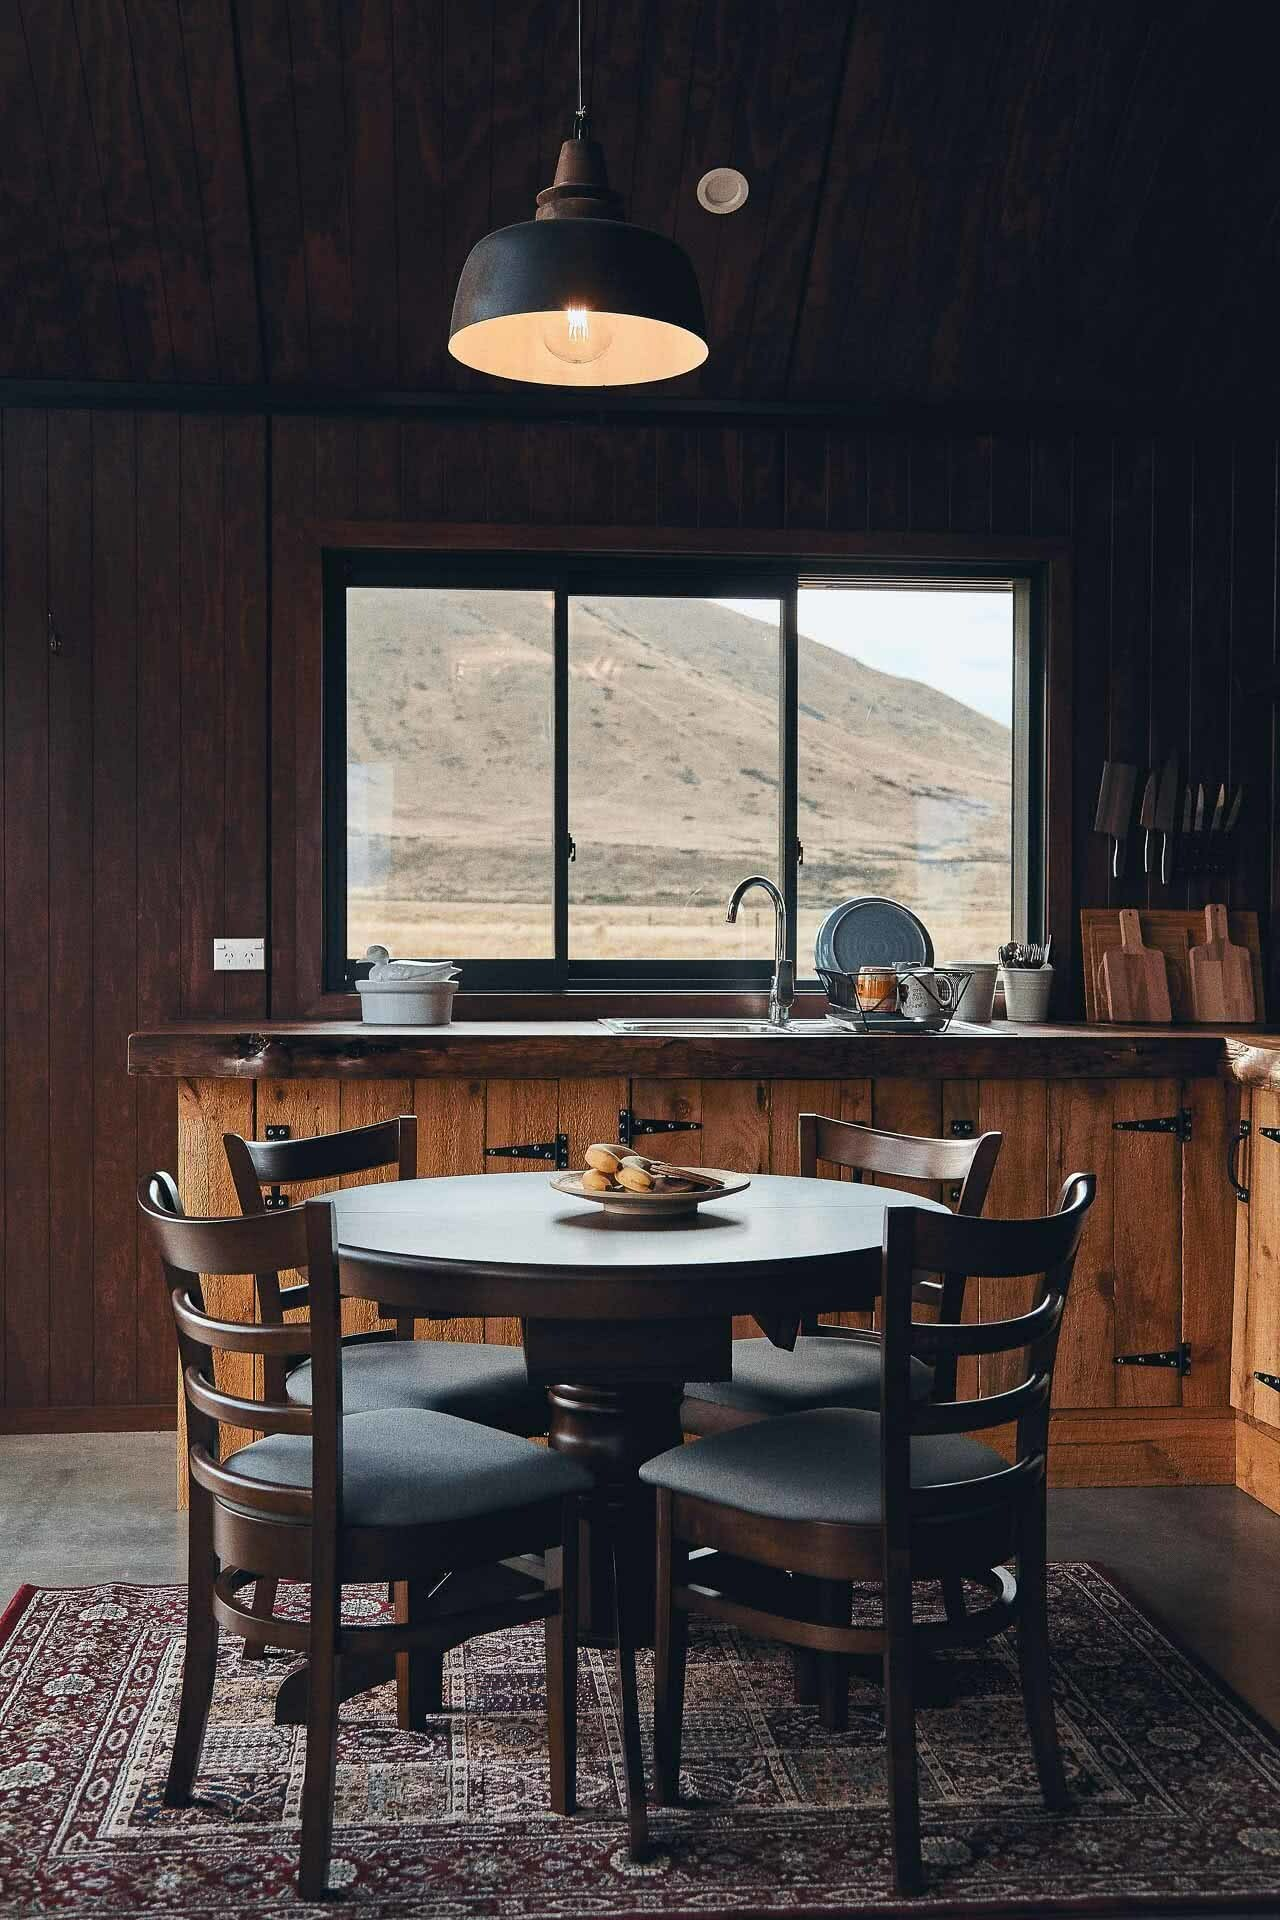 This High Country Cabin Offers the Wild Isolation We All Need Right Now, photo by Kenny Smith, cabin, isolation, twizel, south island, new zealand, dining room